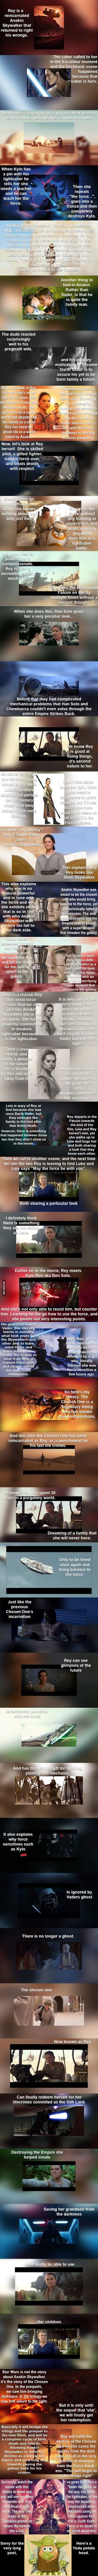 Rey from Star Wars: The Force Awakens Fan Theory http://geekxgirls.com/article.php?ID=6350